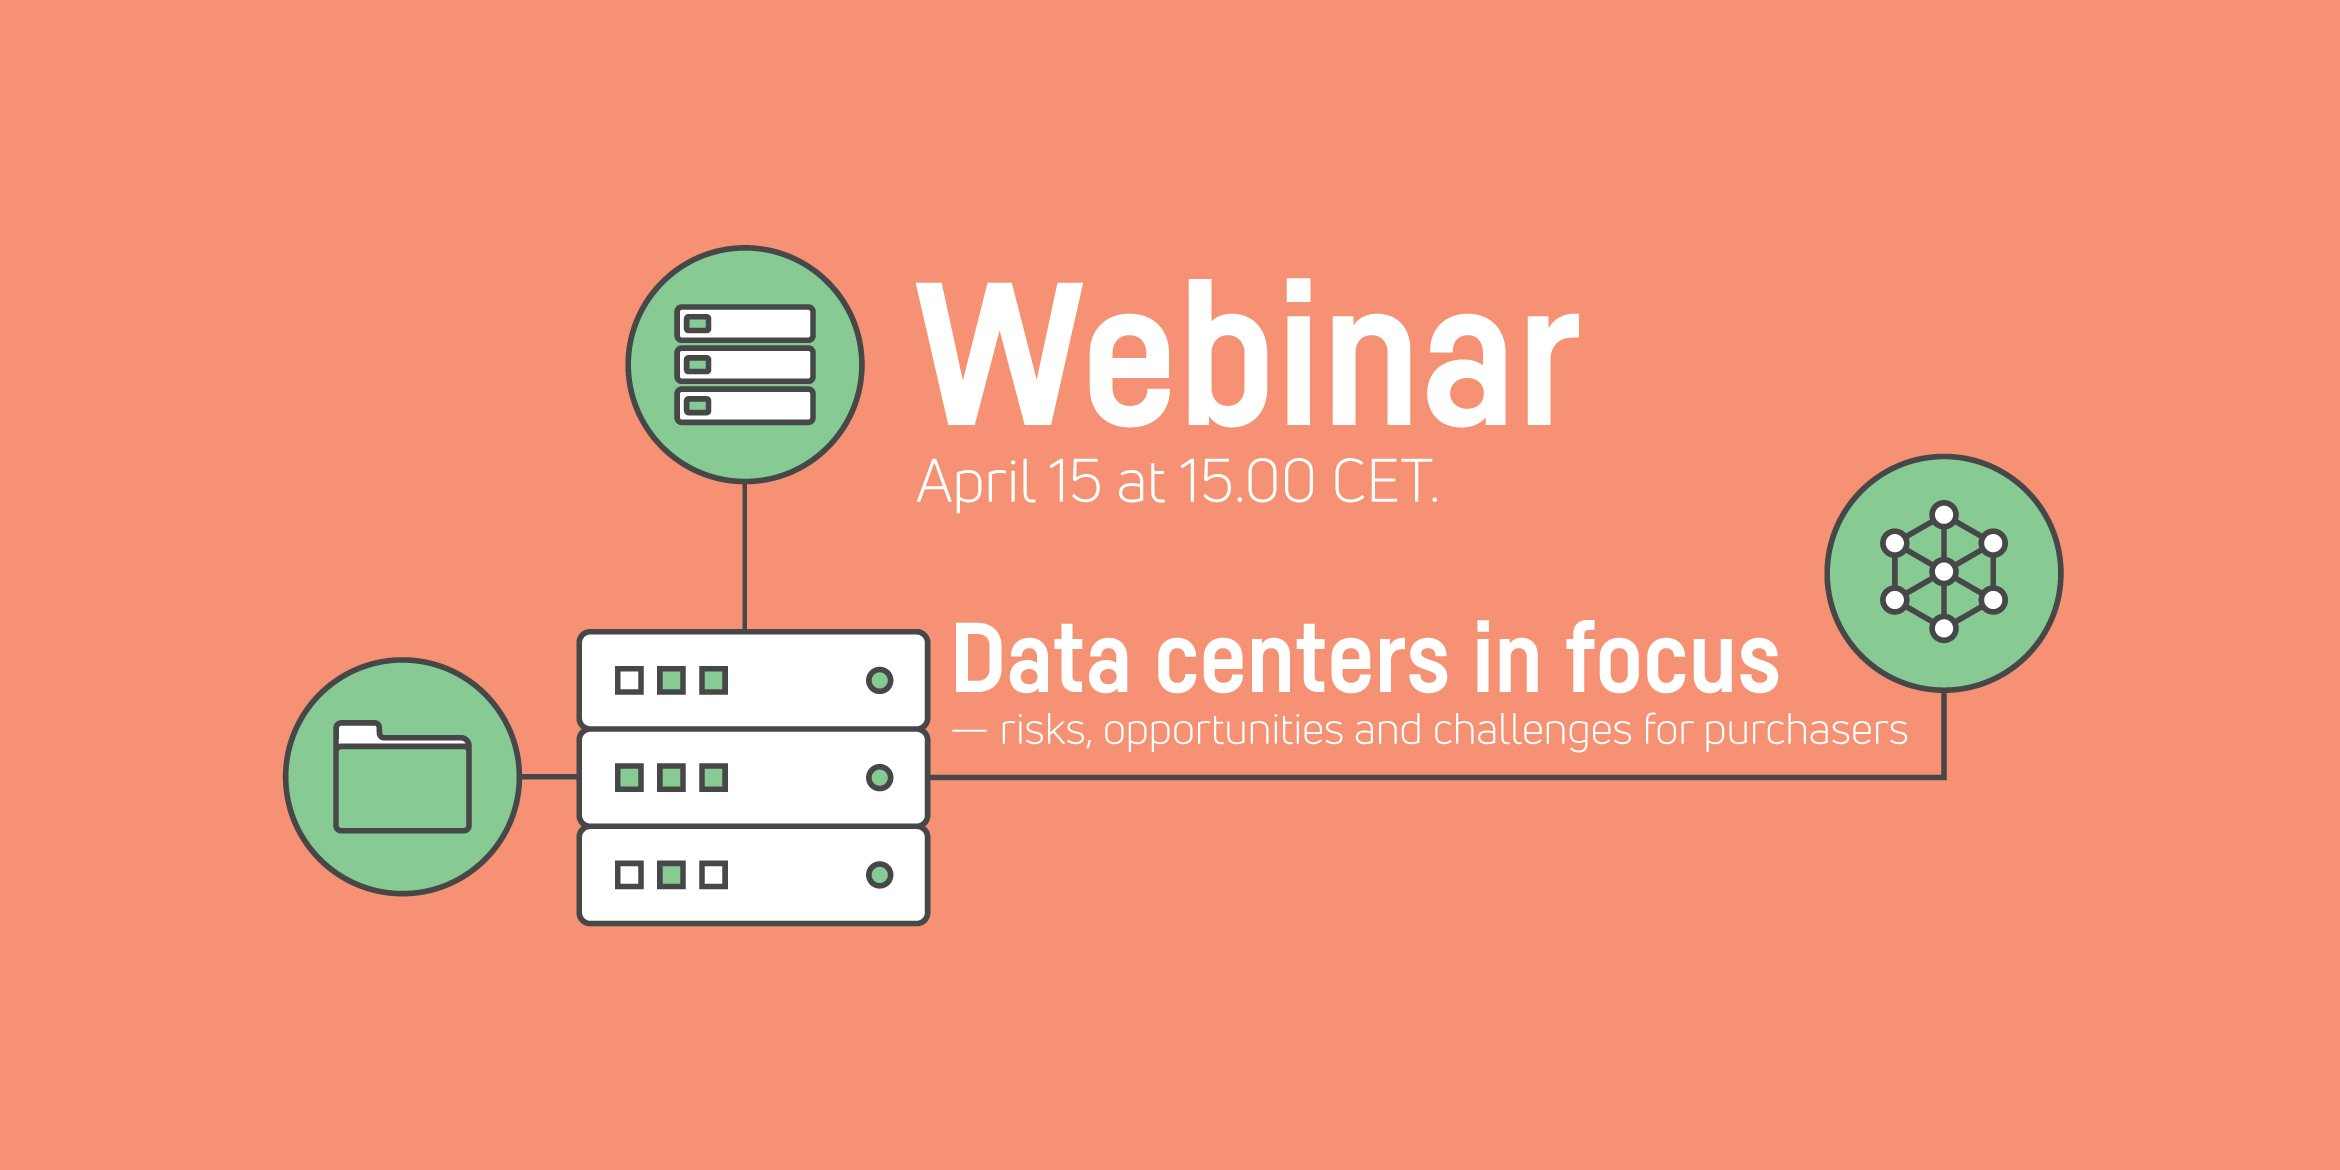 Webinar: Data centers in focus — risks, opportunities and challenges for purchasers